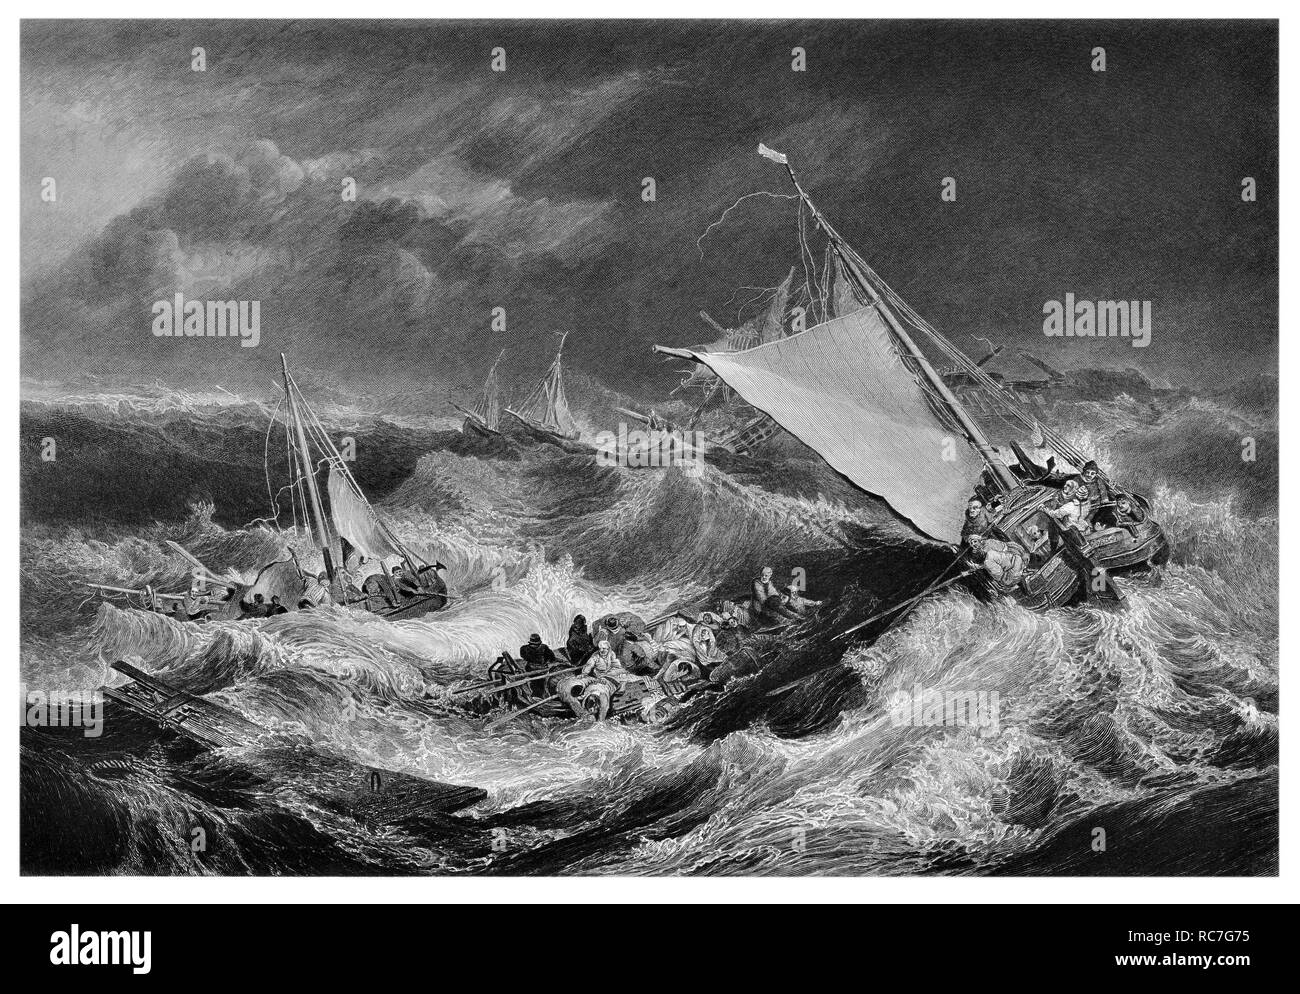 J.M.W Turner The shipwreck engraved by W. Miller - Stock Image